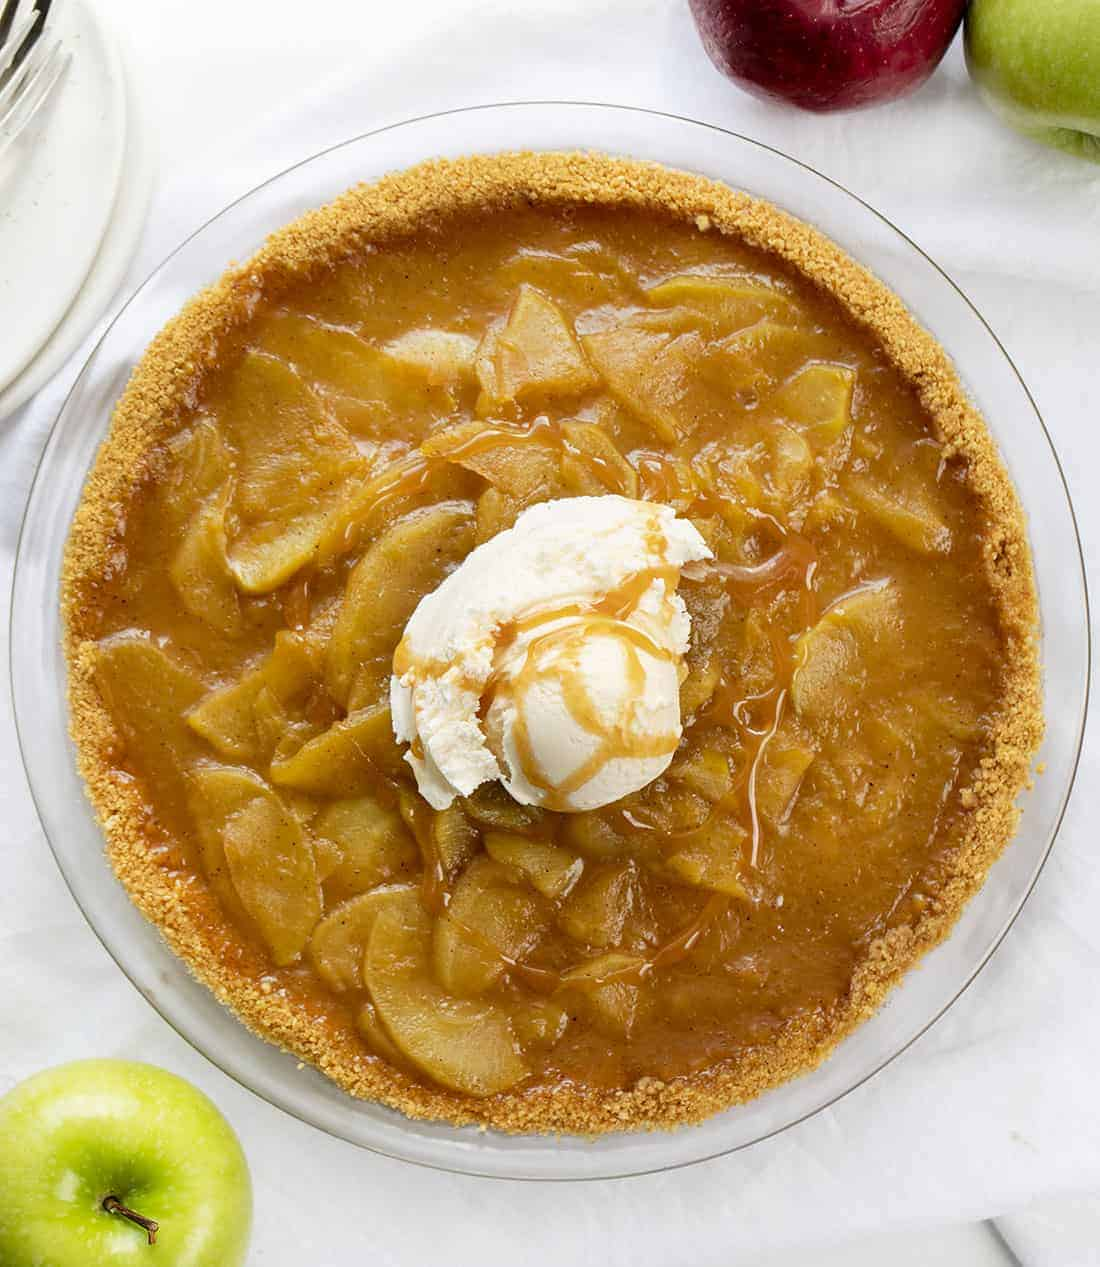 No Bake Apple Pie Recipe in Glass Pie Dish from Overhead